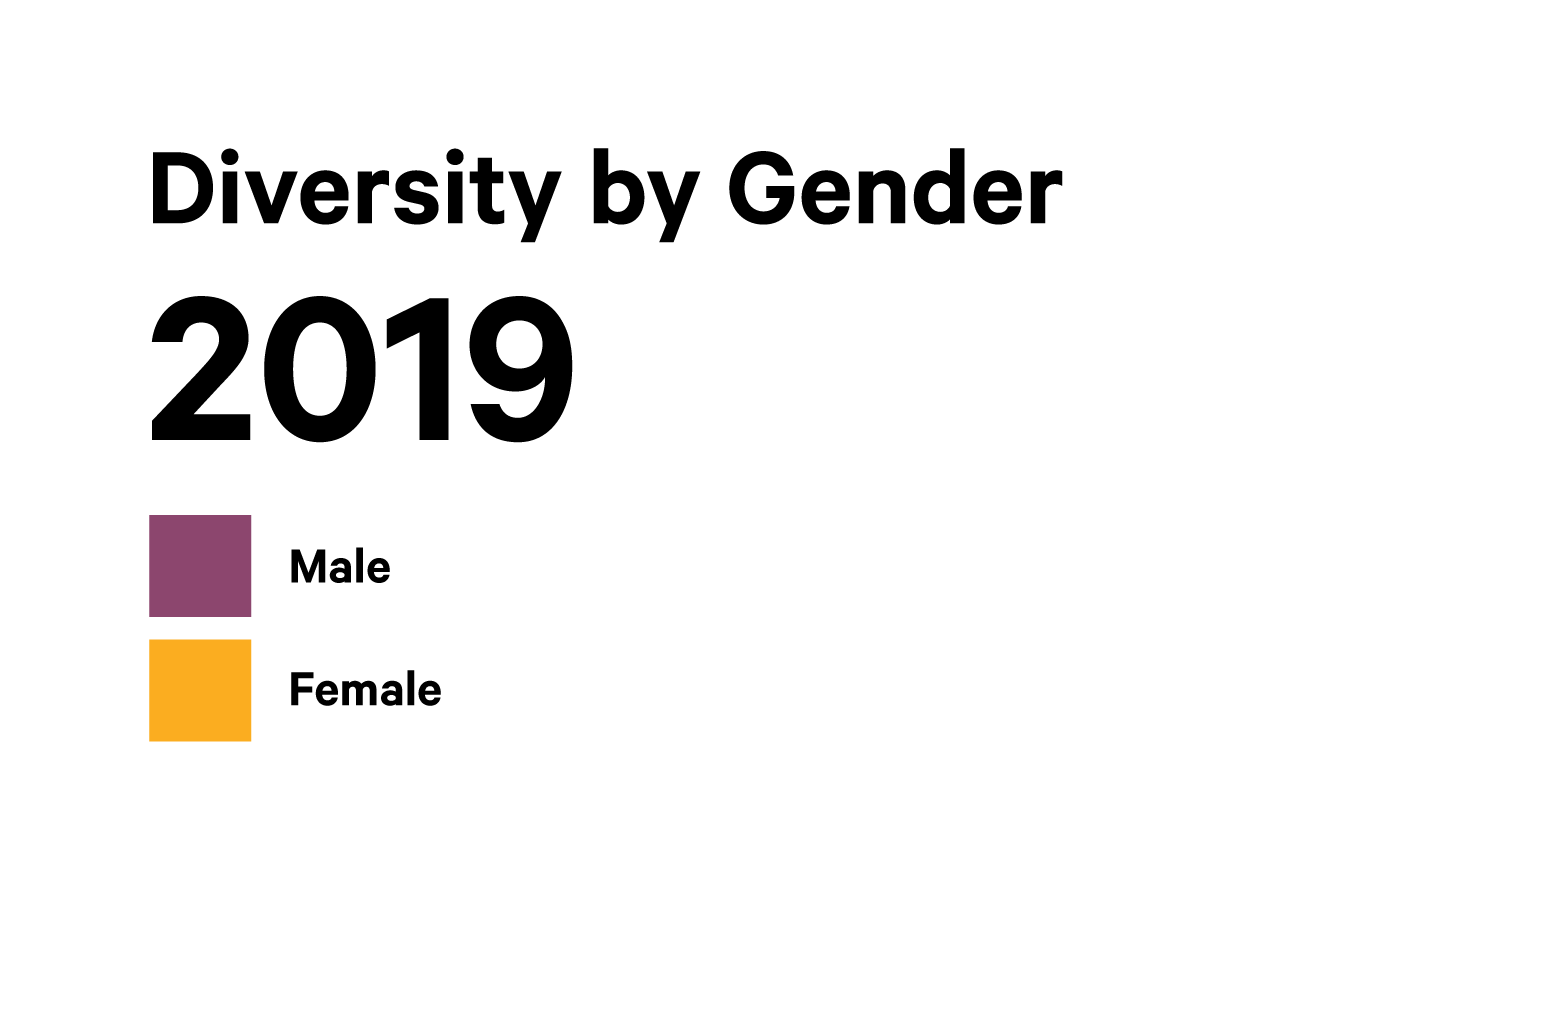 2019 Gender Diversity key png